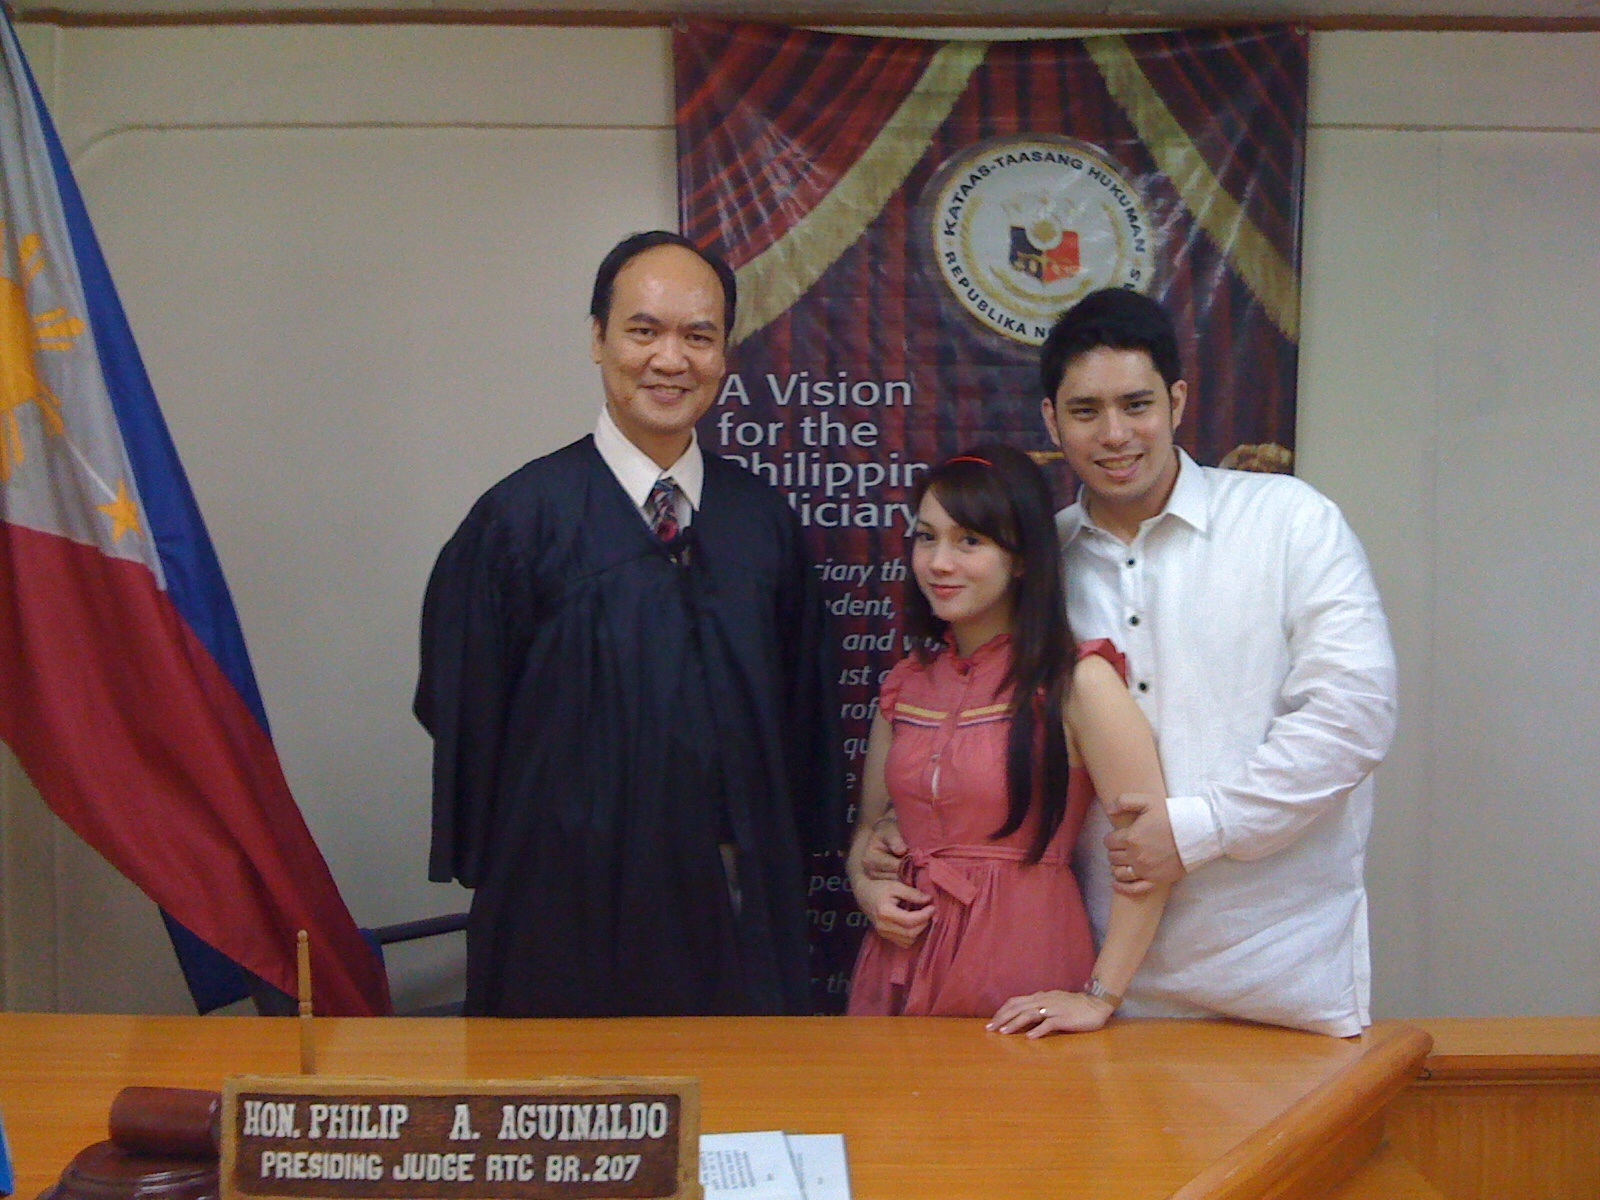 With Family Court judge, the Hon. Philip A. Aguinaldo.